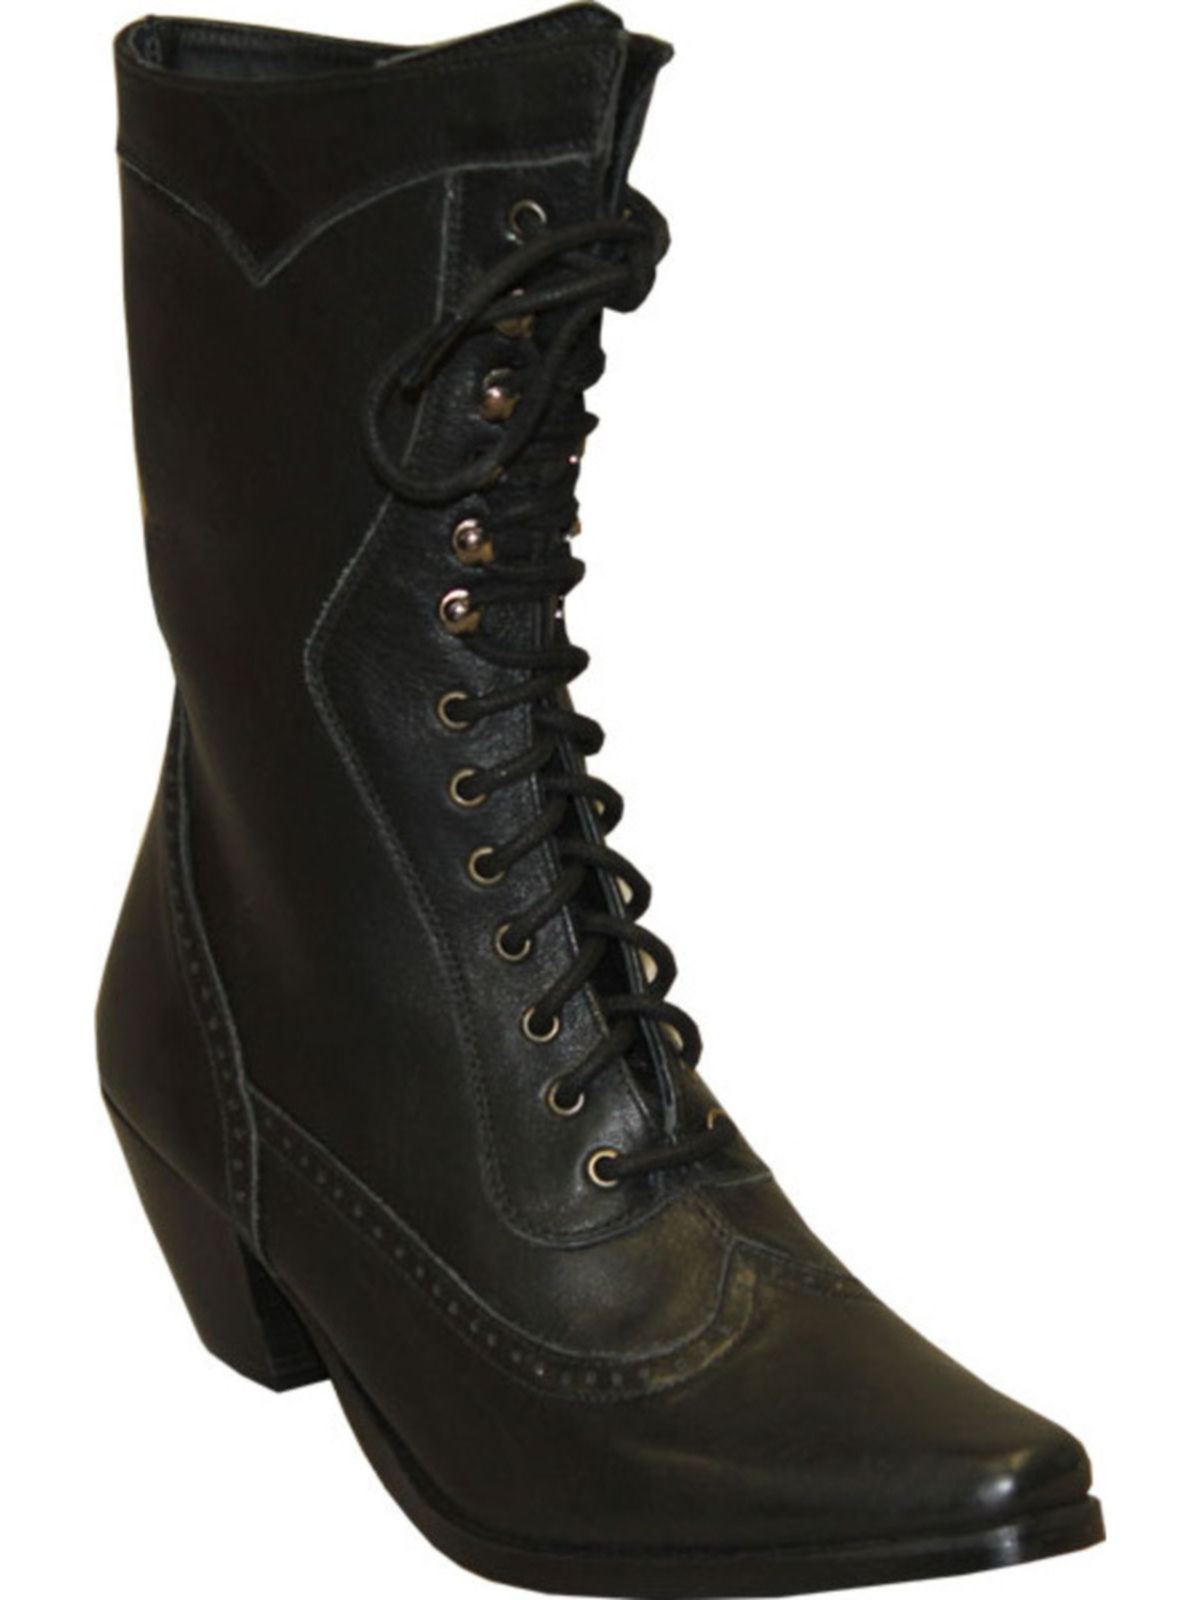 Bootamerica Rawhide Womens Black Victorian Lace Up Boot 5010